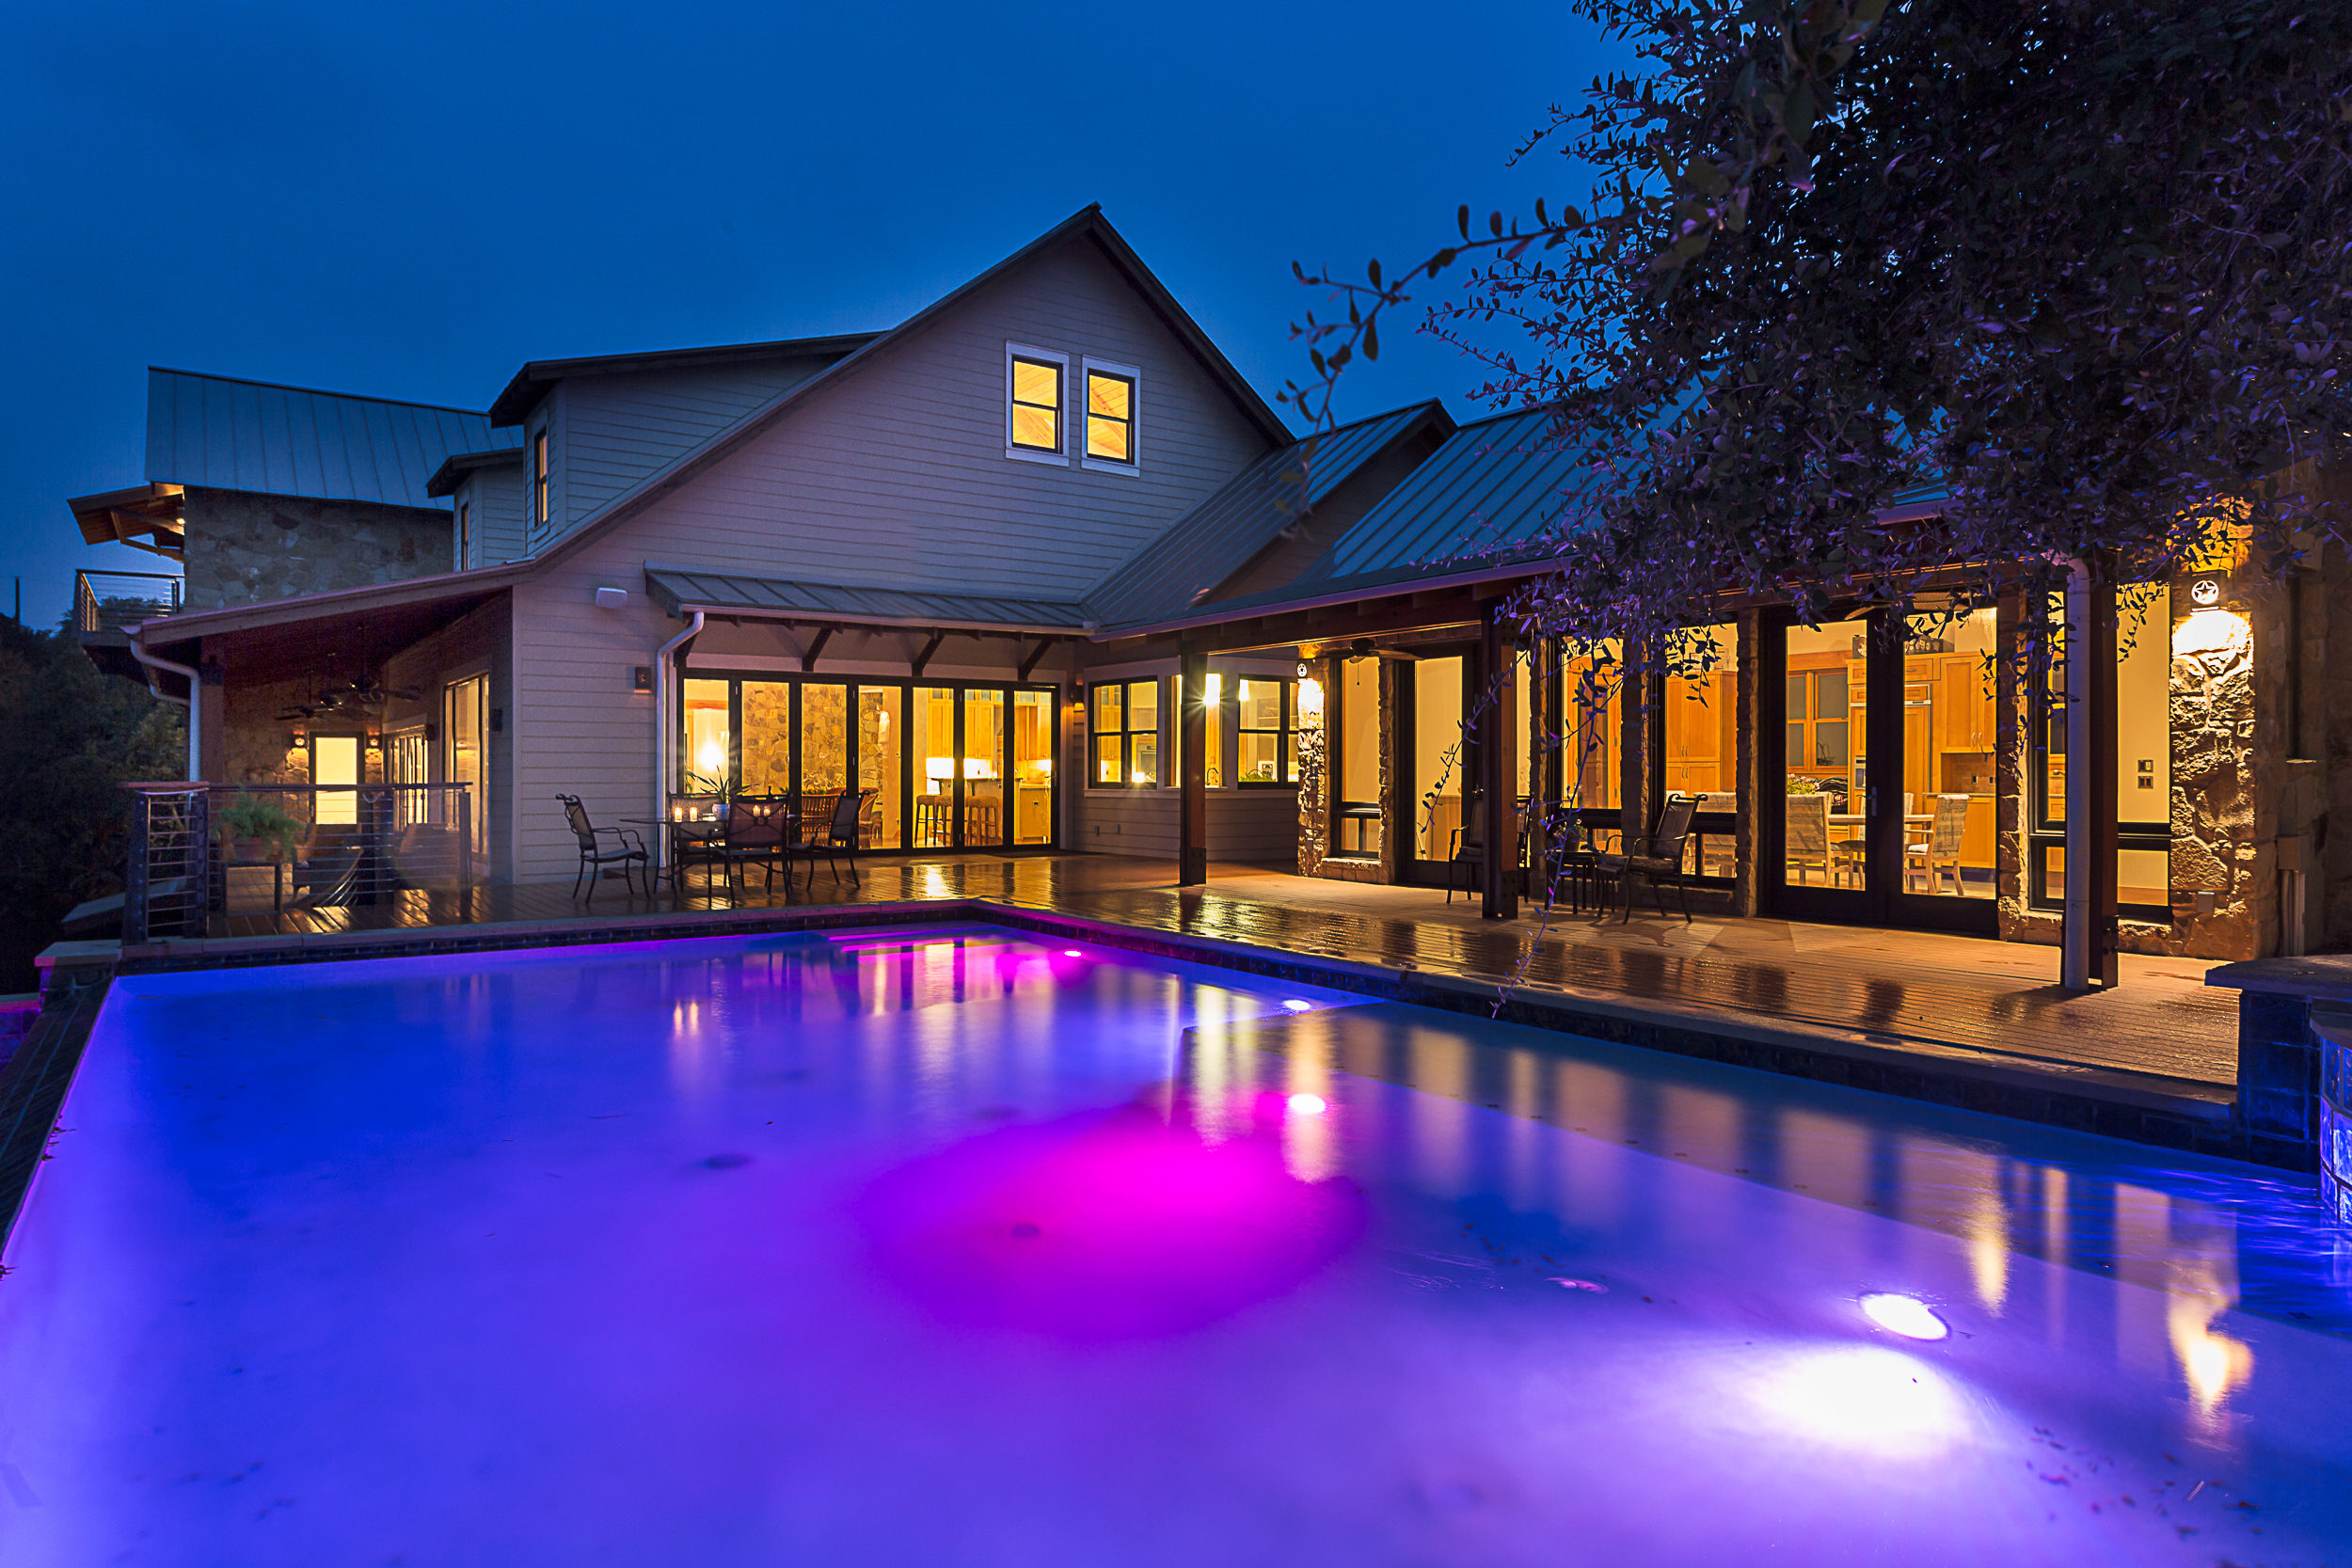 Single Family Home for Sale at Incomparable Views on 7.6 Acres 3601 Cloudy Ridge Rd Austin, Texas 78734 United States